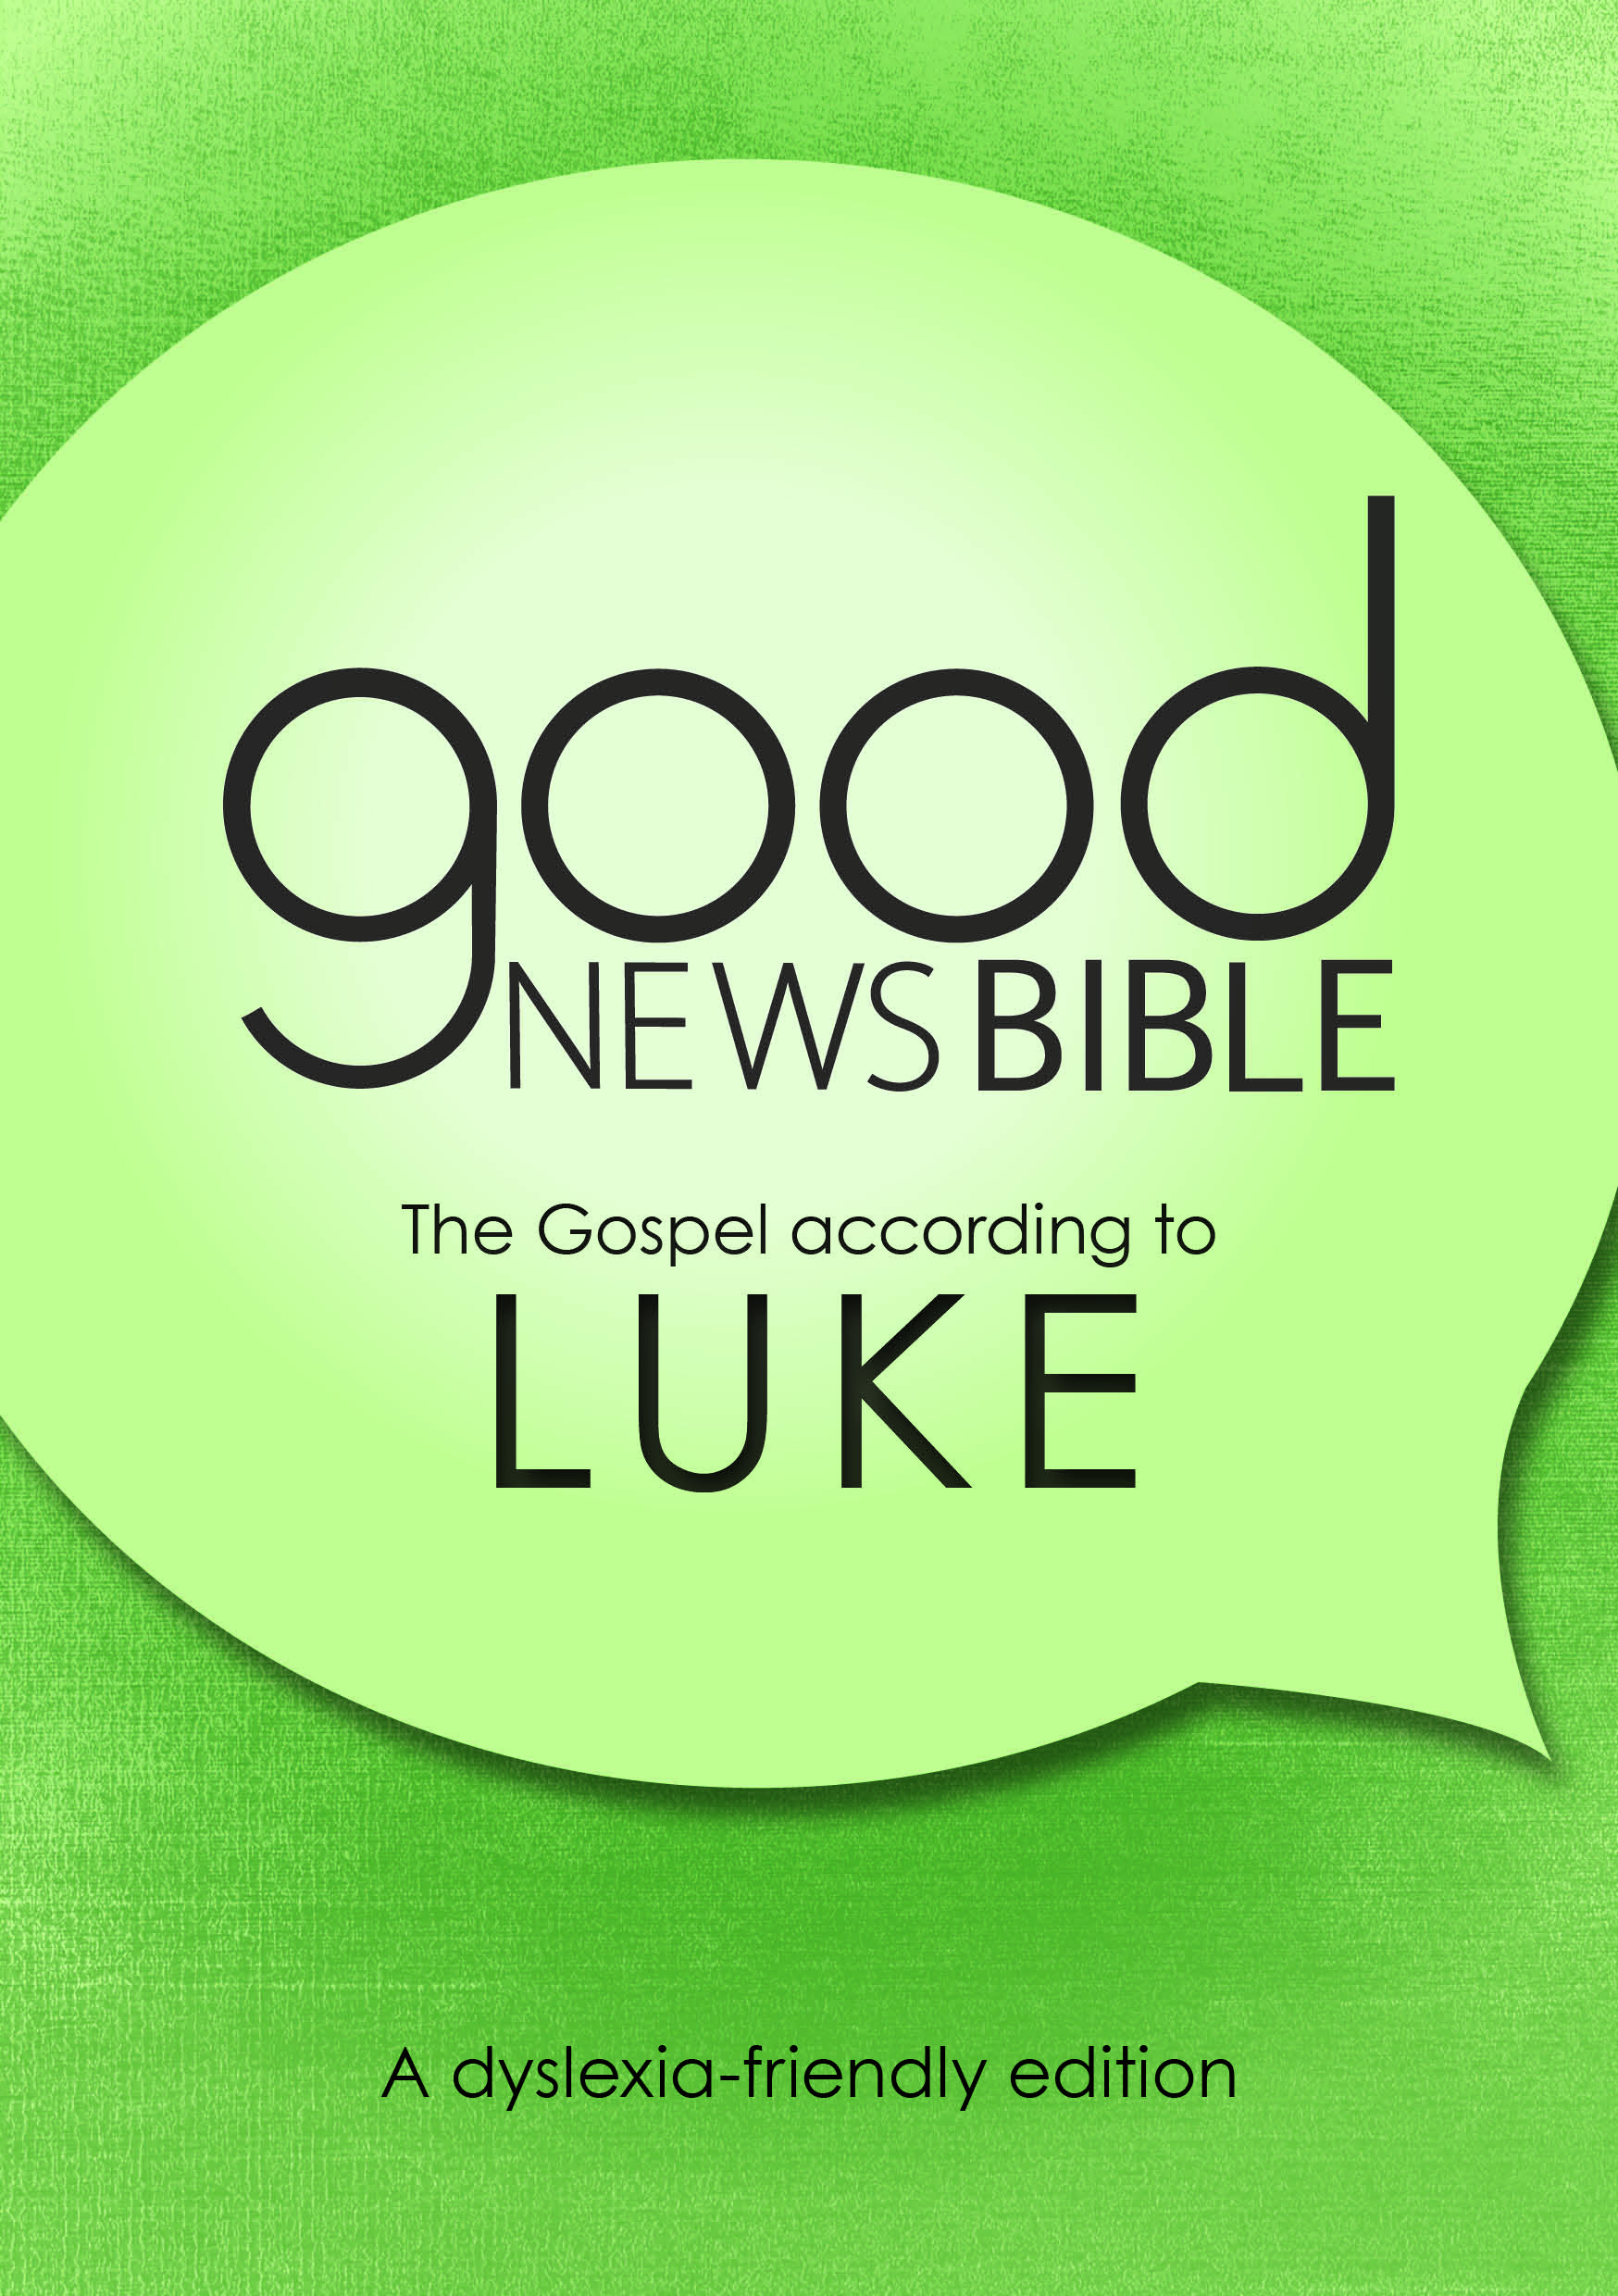 Good News Bible (GNB) Dyslexia-Friendly Gospel of Luke